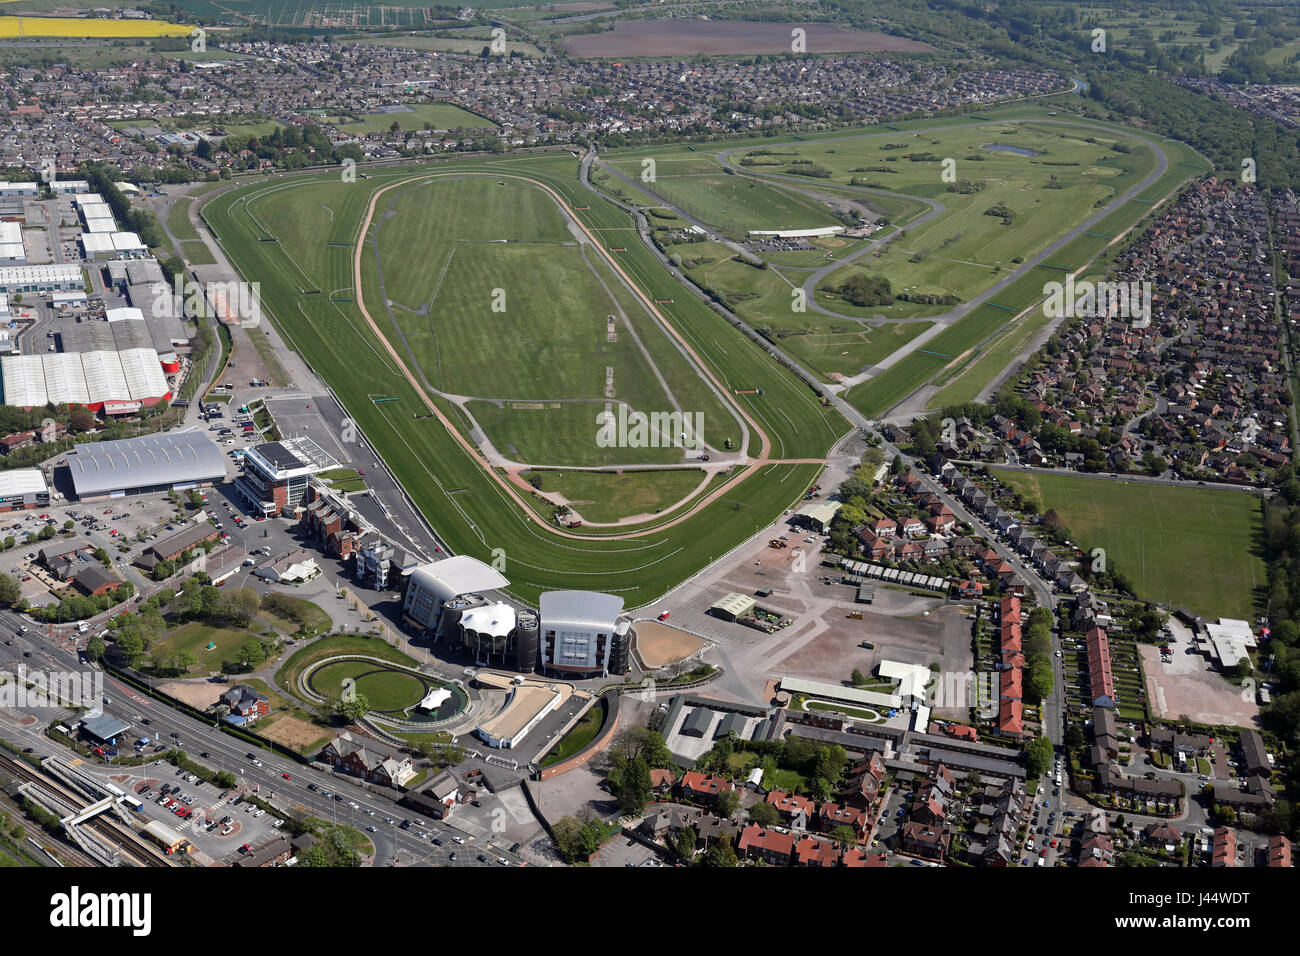 aerial view of Aintree Racecourse, home of the Grand National, Liverpool, UK Stock Photo